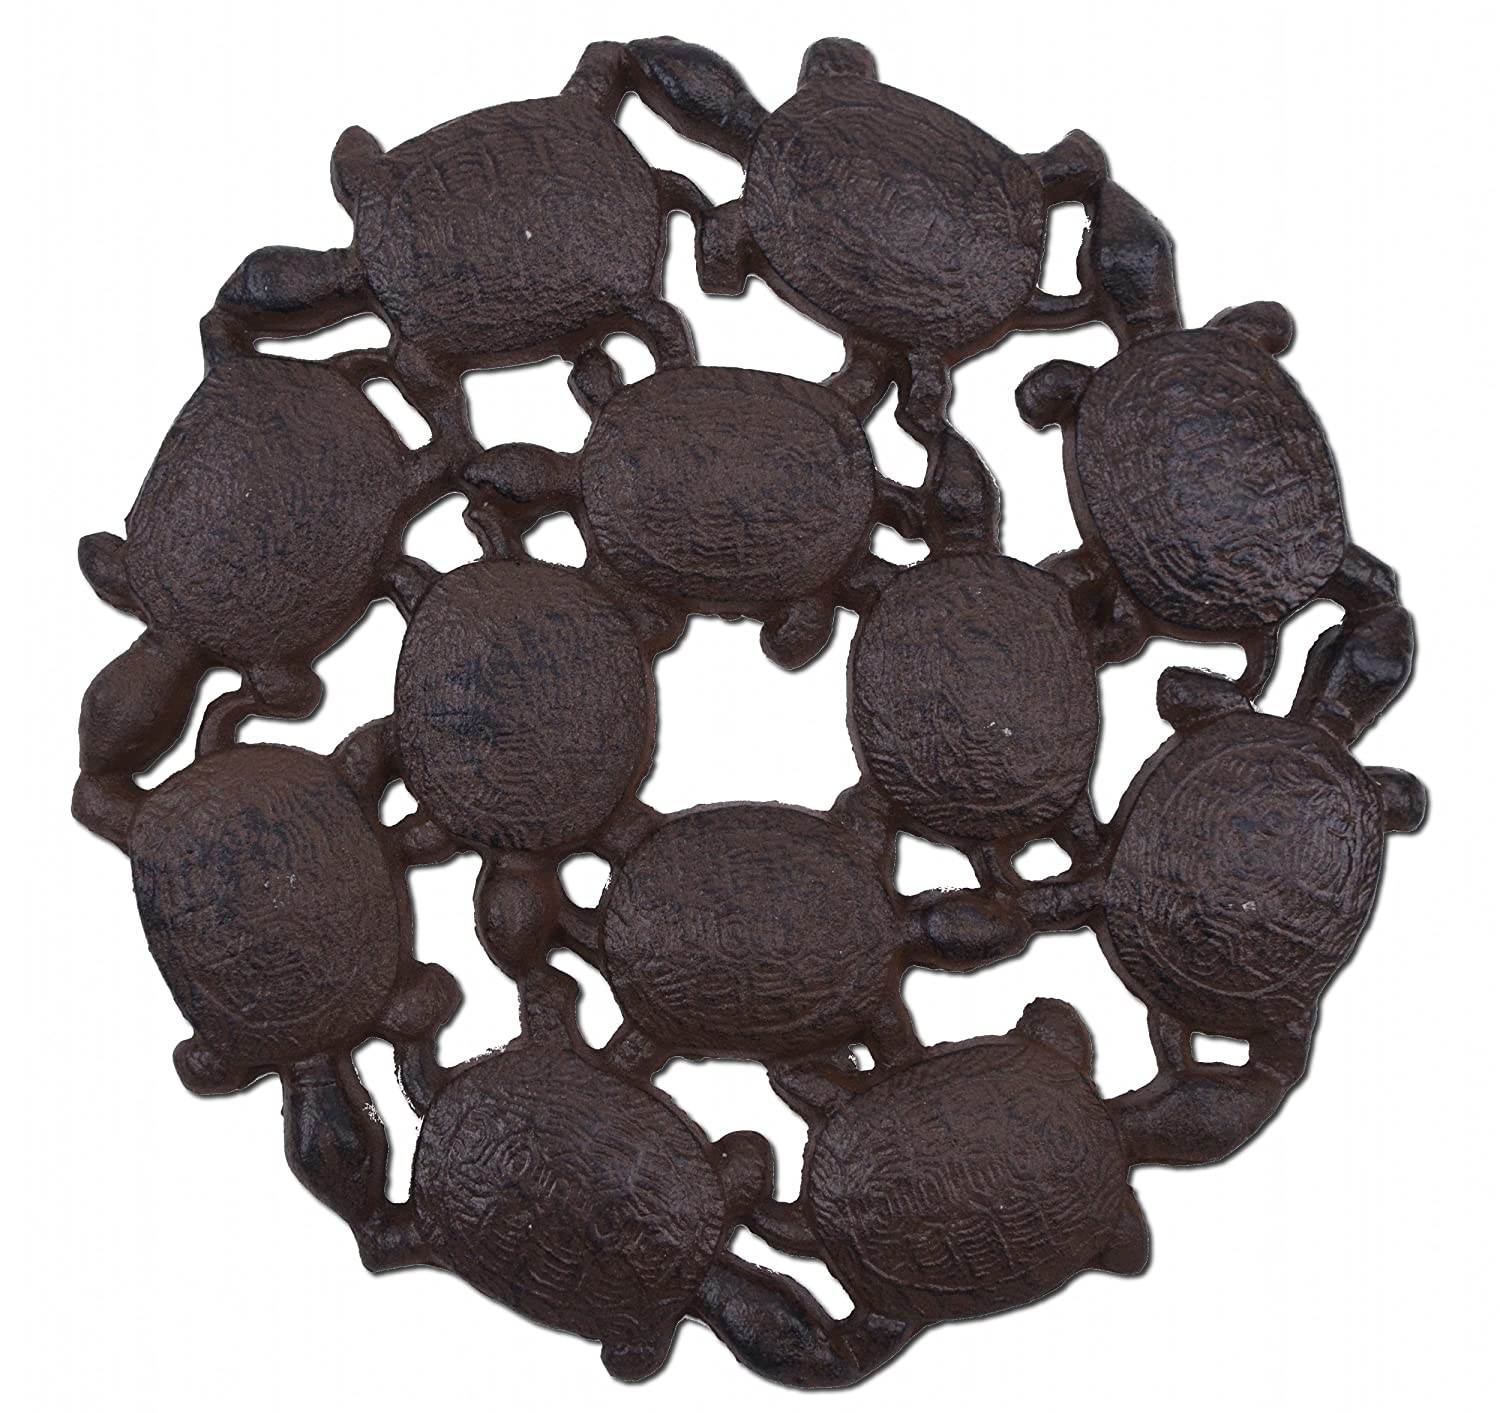 "Import Wholesales Baby Turtles Decorative Stepping Stone Rust Brown Cast Iron 10.25"" Wide Flagstone"